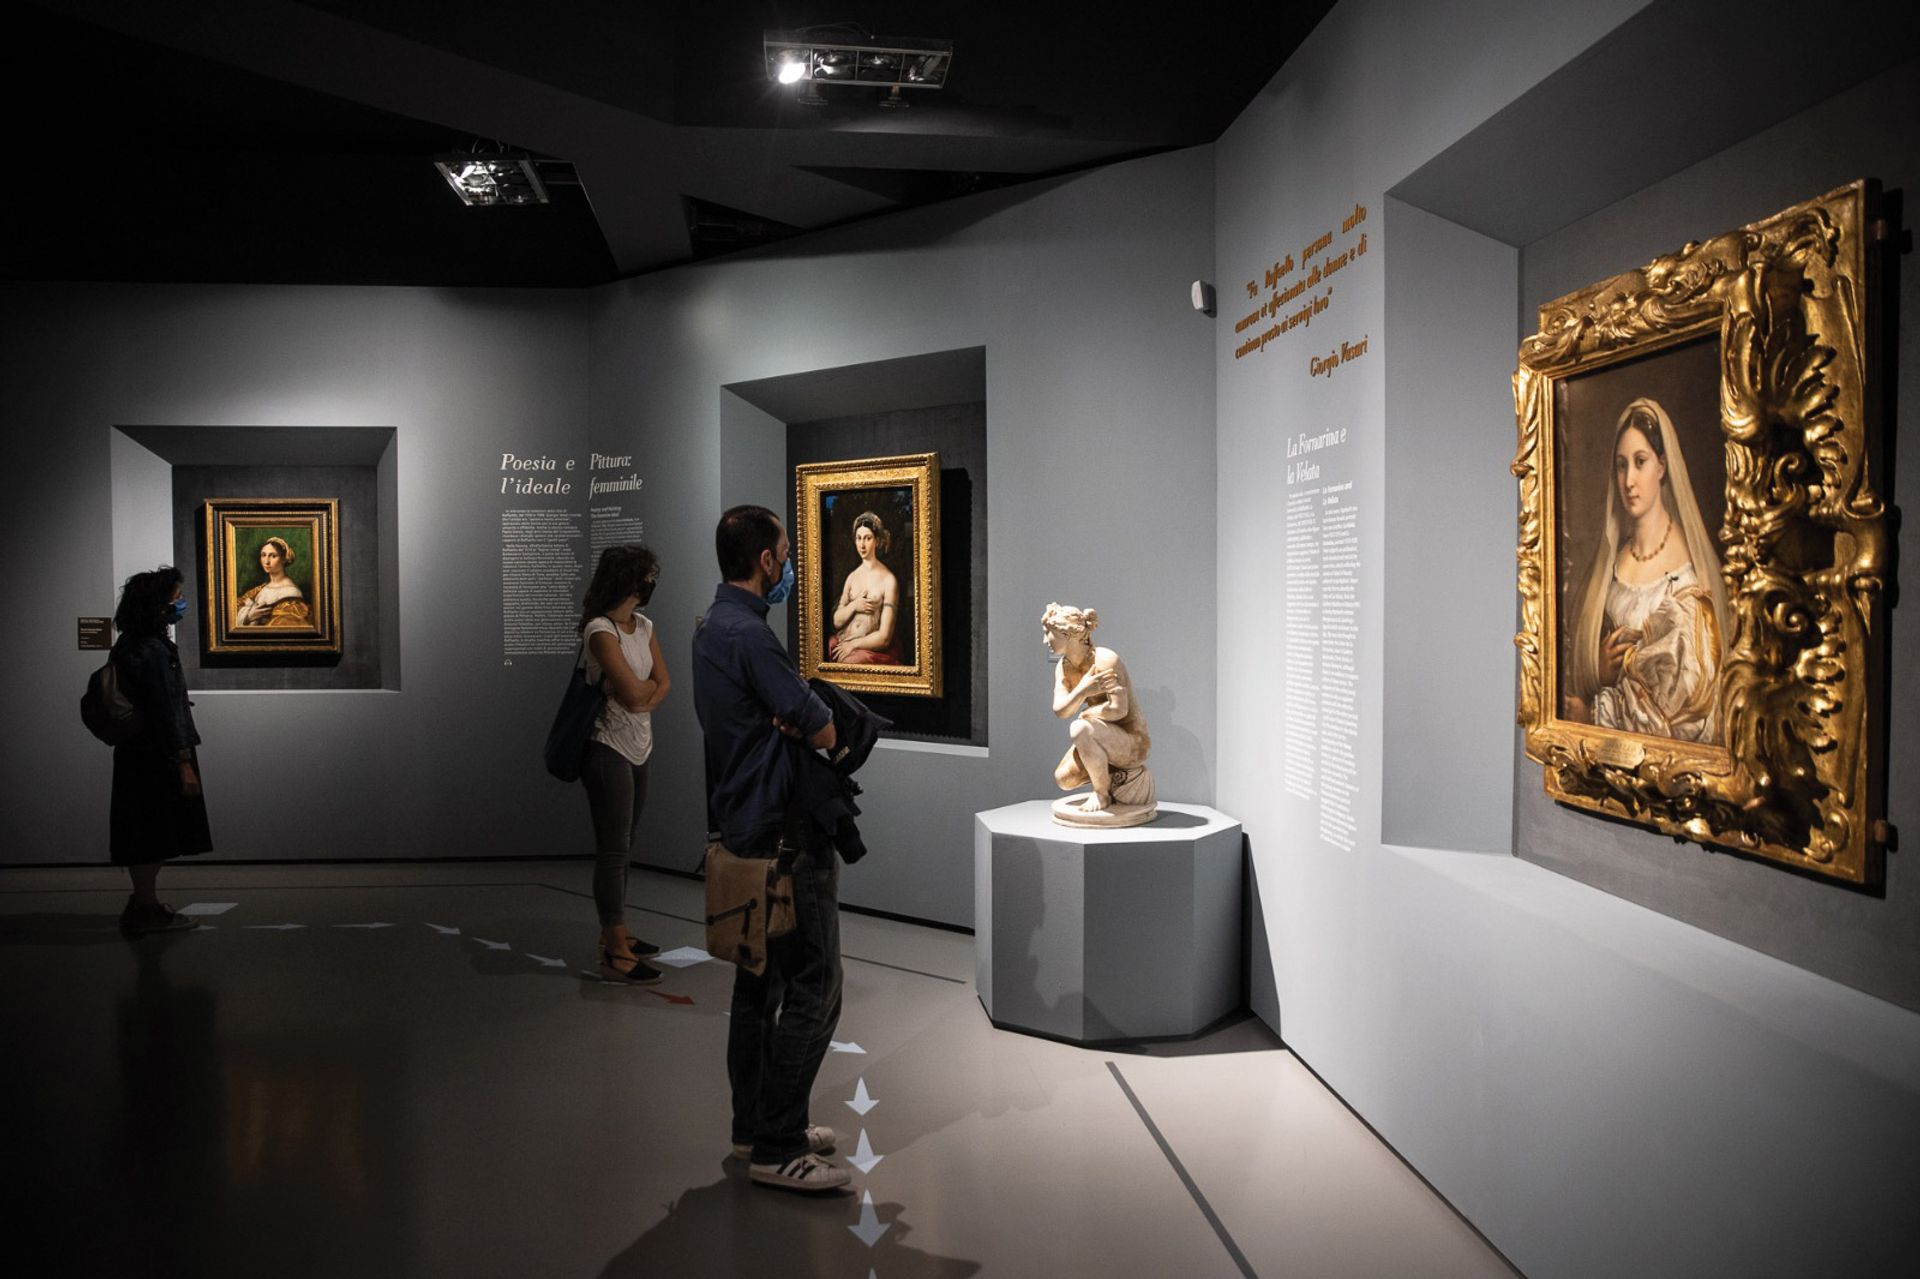 Socially distanced visitors taking in Raphael's masterpieces at the Scuderie del Quirinale in Rome © Alberto Novelli